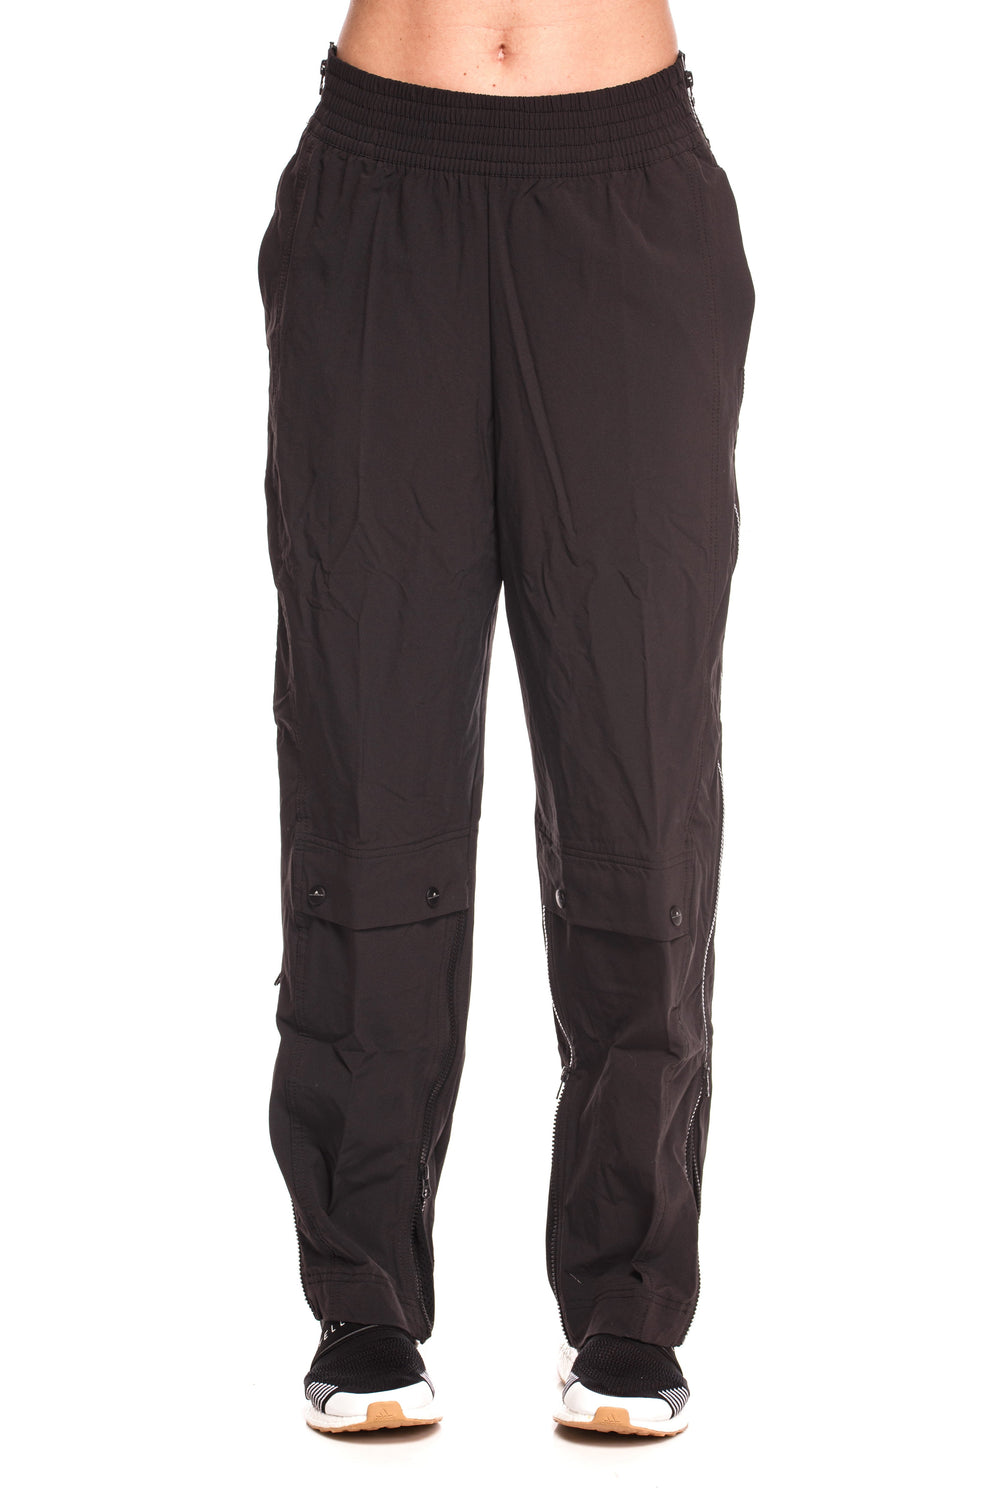 Pantaloni sport Performance Adidas Stella McCartney